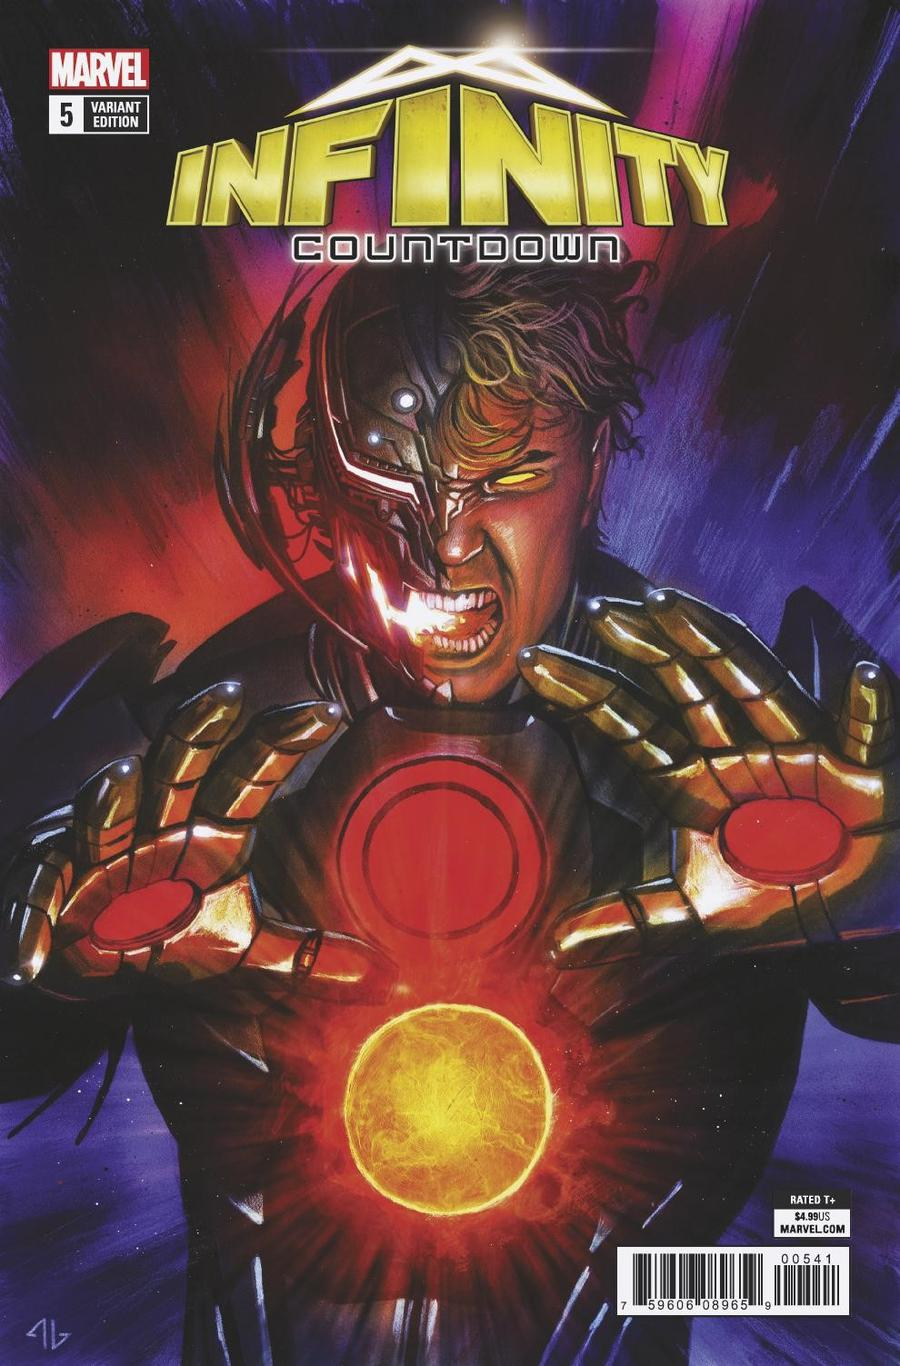 Infinity Countdown #5 Cover D Variant Adi Granov Ultron Holds Infinity Cover